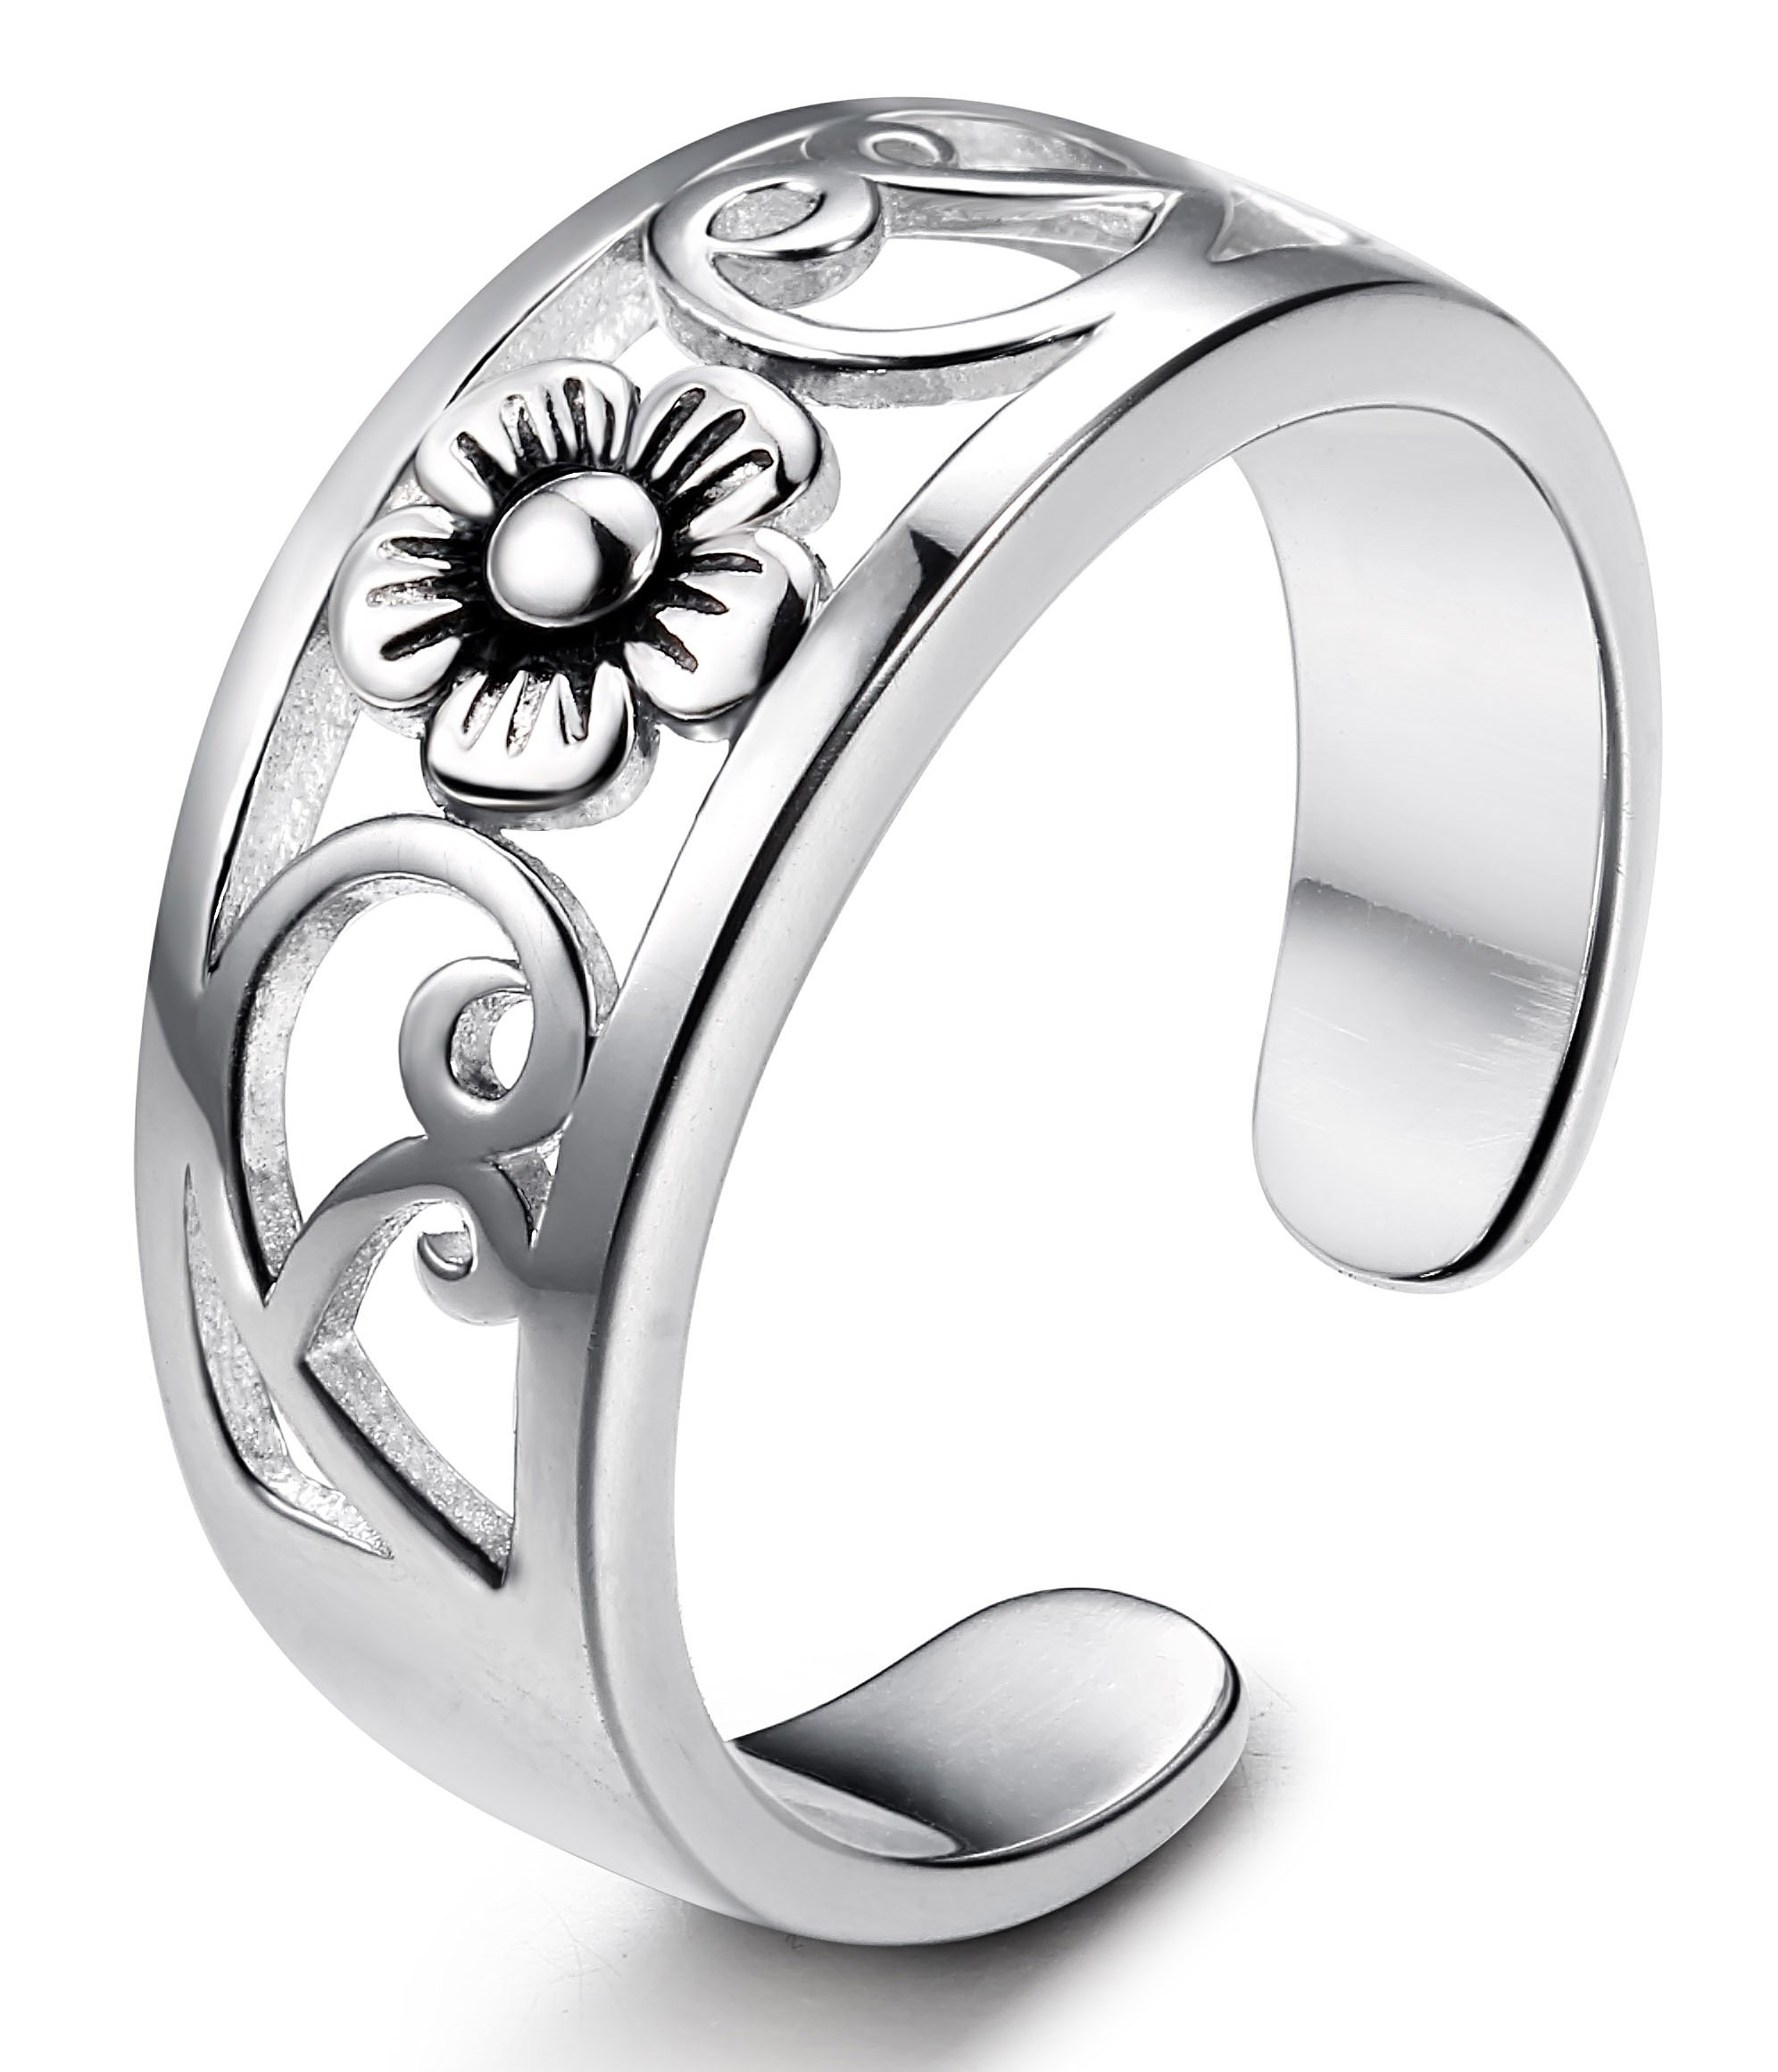 FUNRUN JEWELRY Sterling Silver Flower Toe Band Ring for Women Adjustable